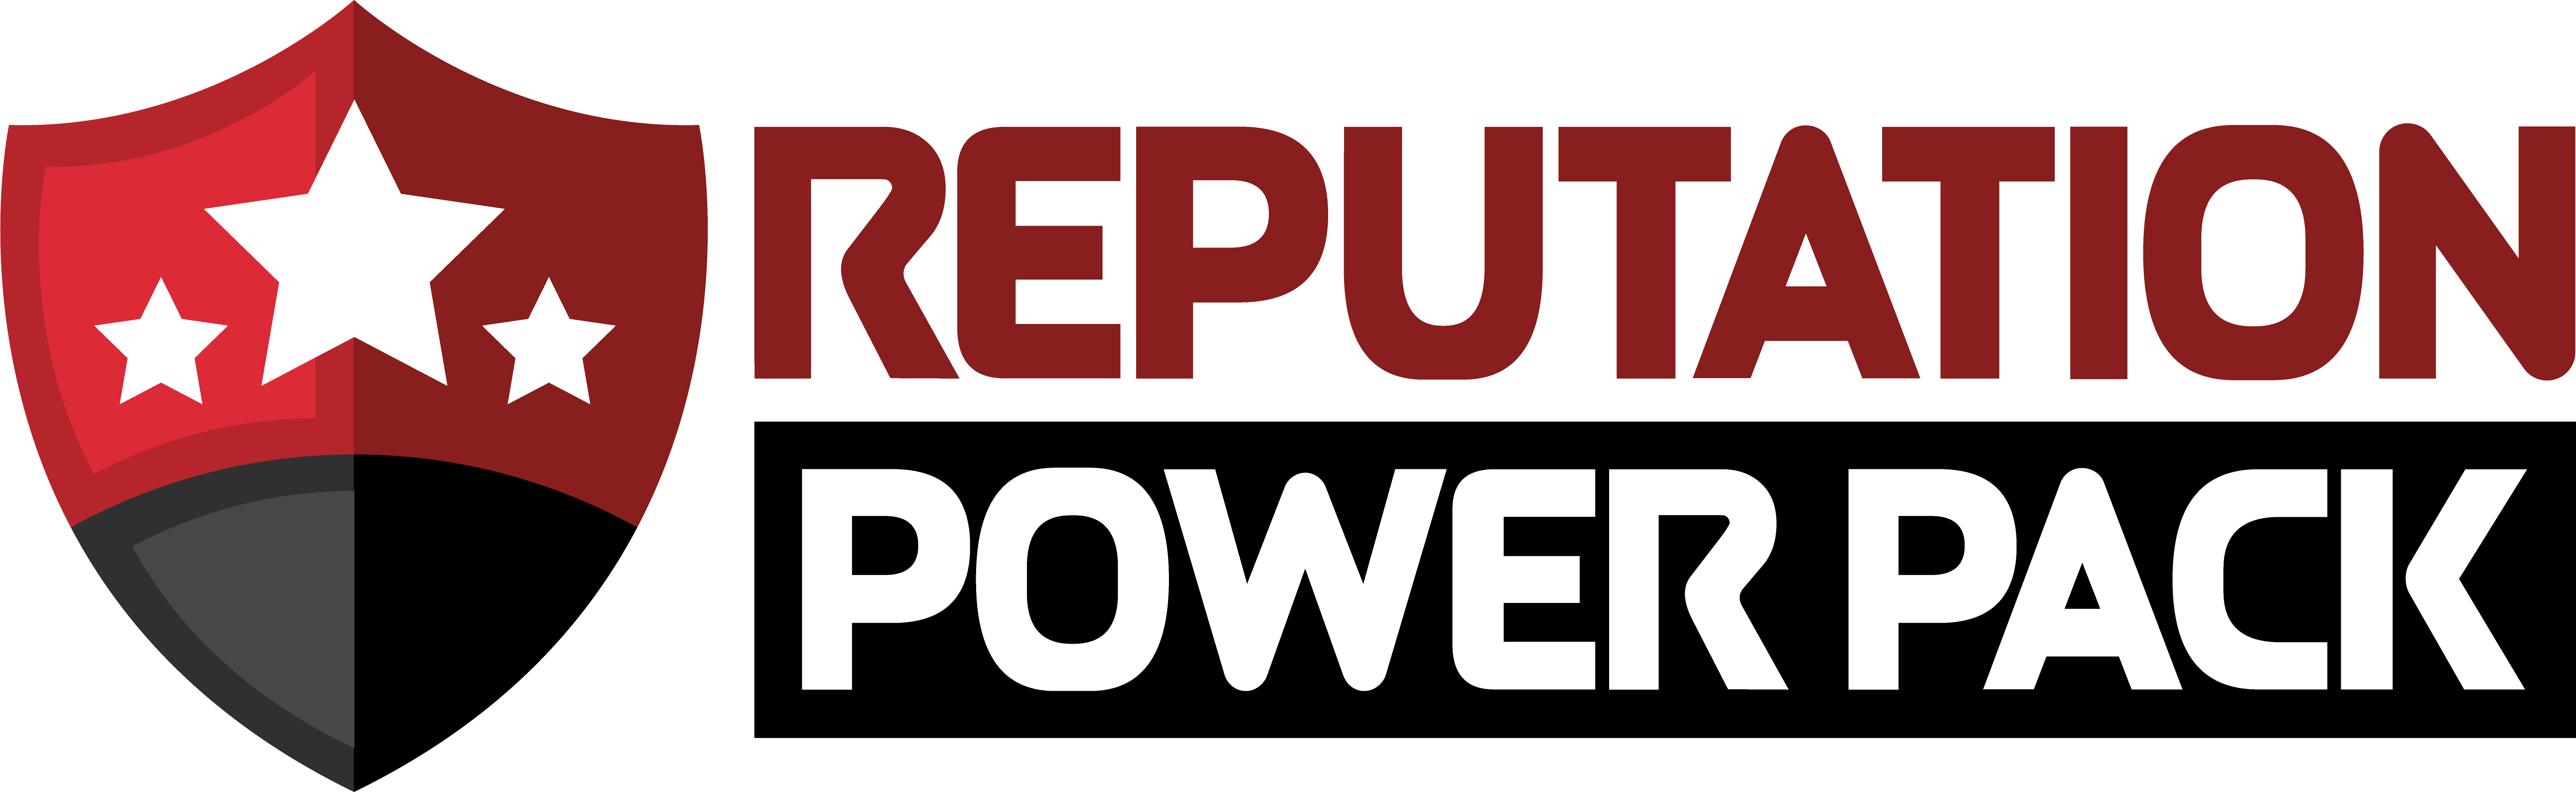 Reputation Power Pack download